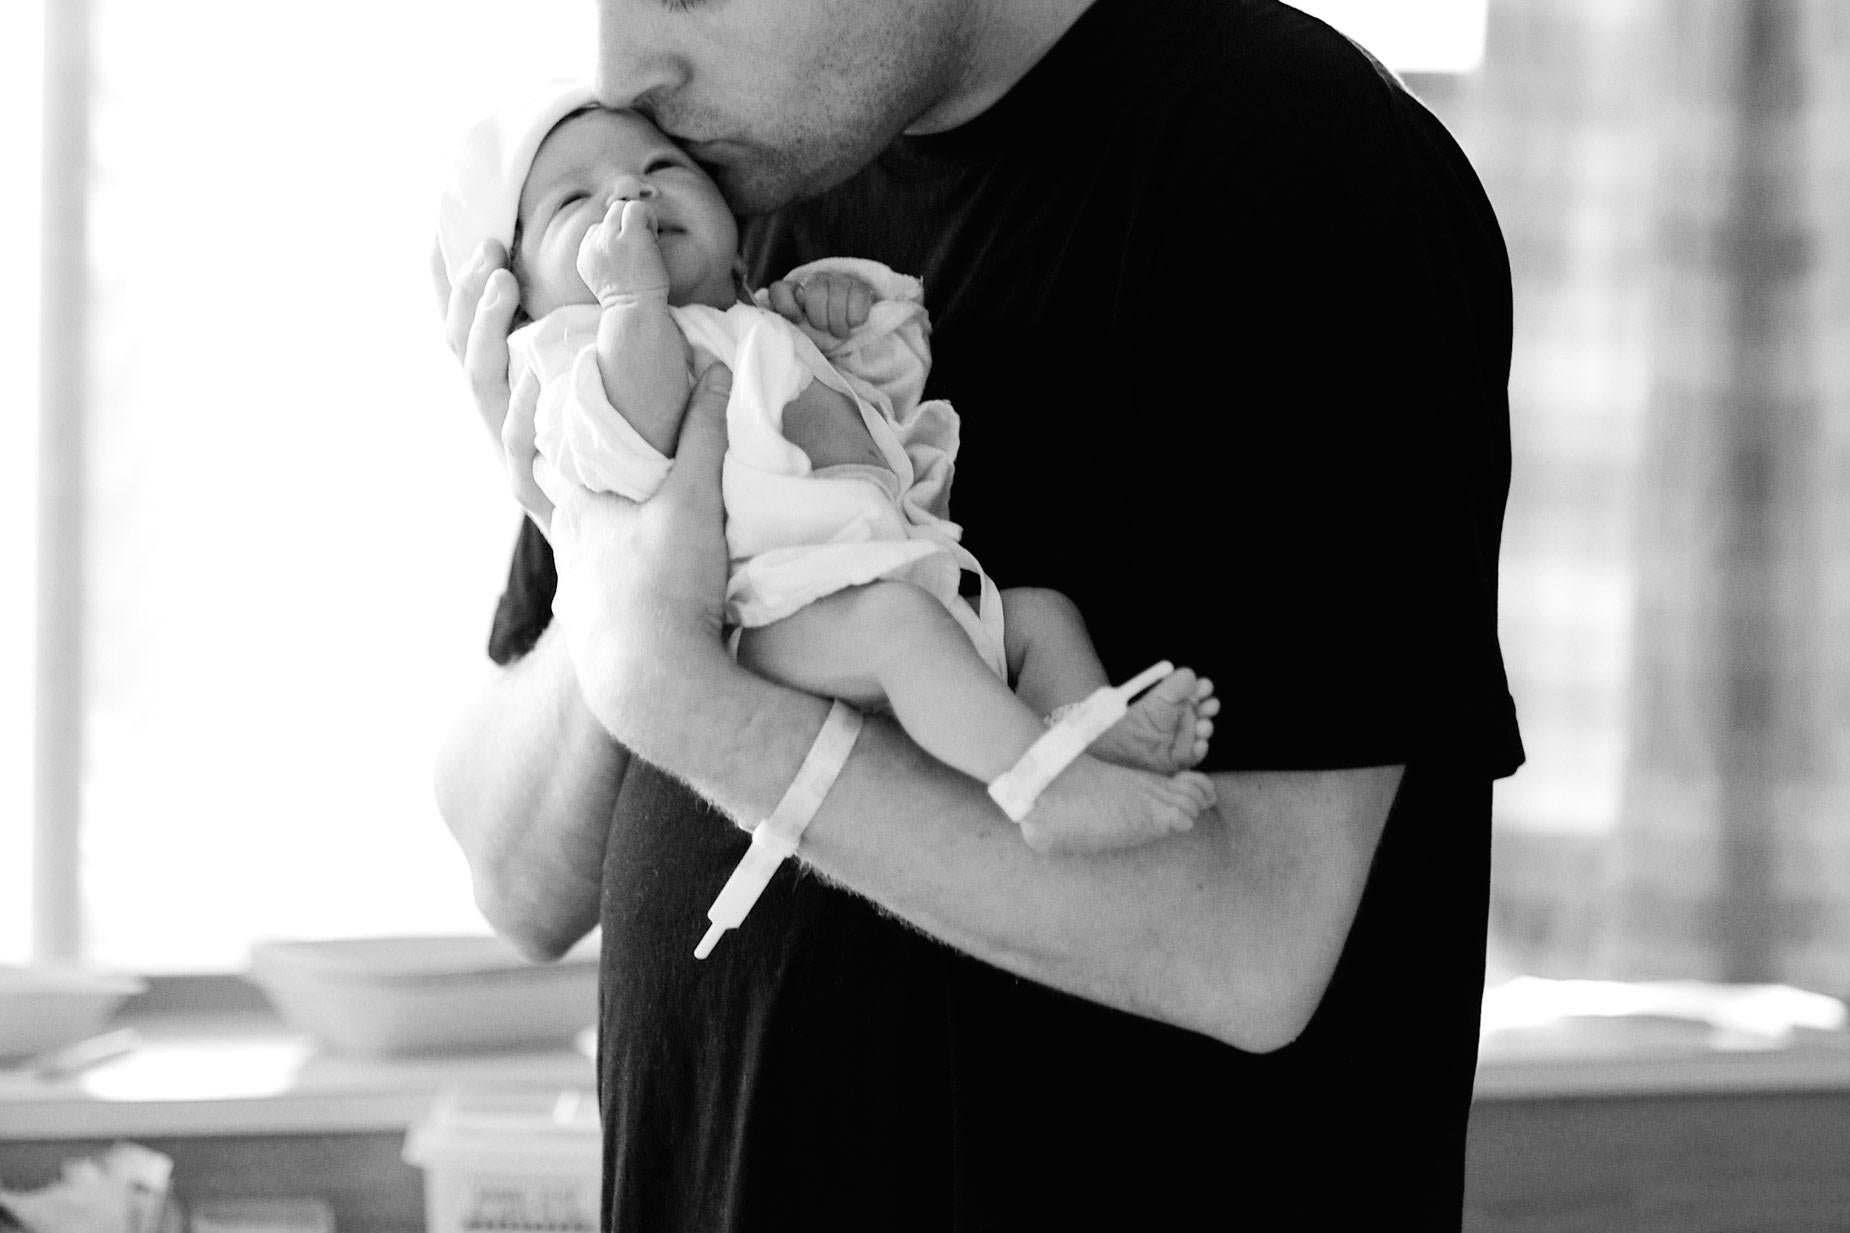 Black-and-white stock photo of a father in the hospital holding a newborn.